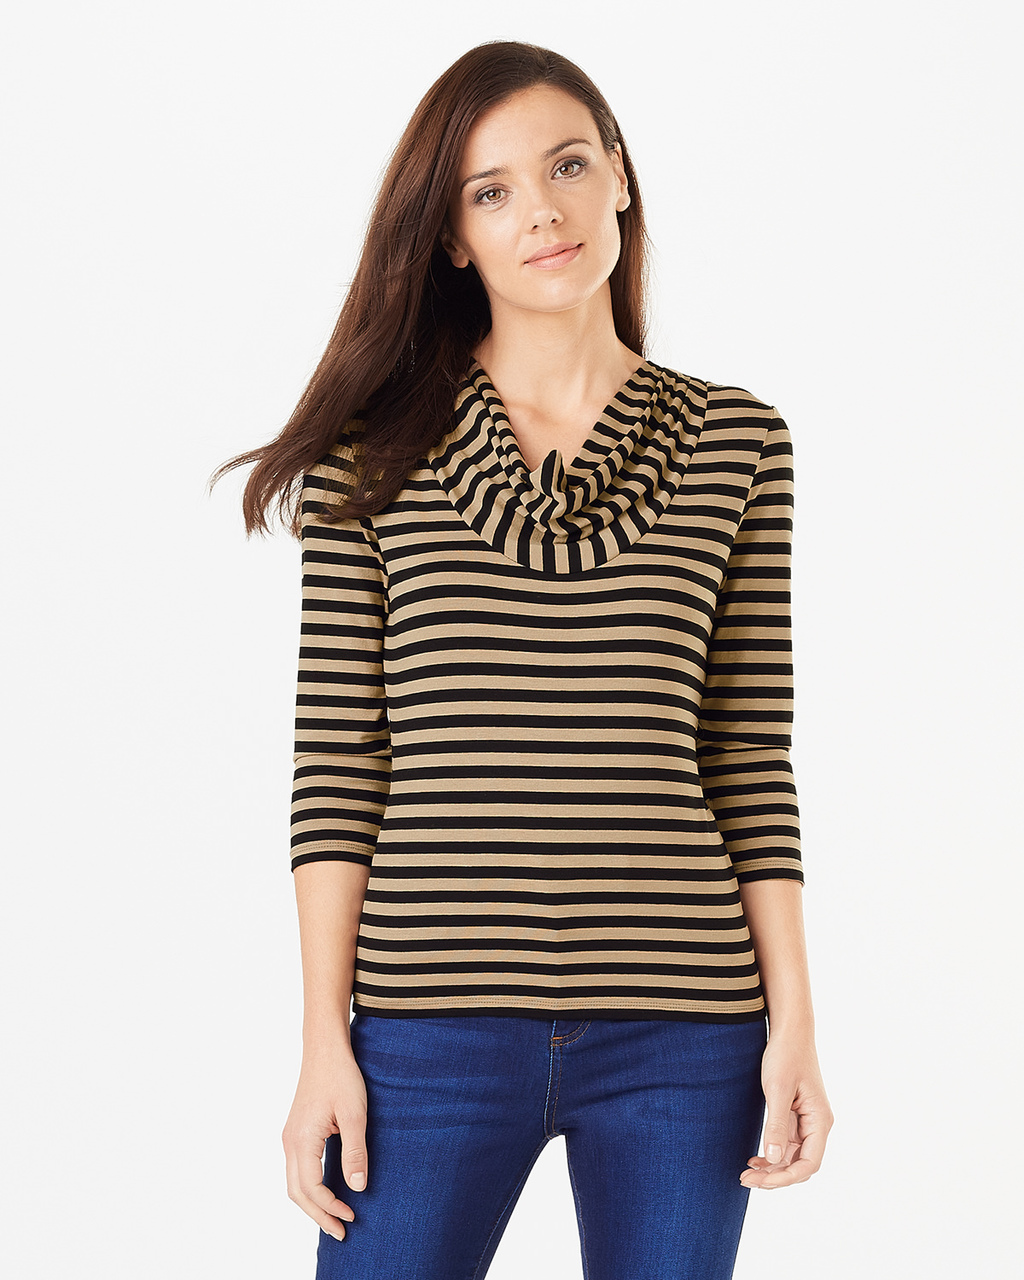 Carrie Stripe Top - neckline: cowl/draped neck; pattern: horizontal stripes; style: t-shirt; secondary colour: camel; predominant colour: black; occasions: casual, creative work; length: standard; fibres: polyester/polyamide - stretch; fit: body skimming; sleeve length: 3/4 length; sleeve style: standard; texture group: jersey - clingy; pattern type: fabric; pattern size: standard; season: s/s 2016; wardrobe: basic